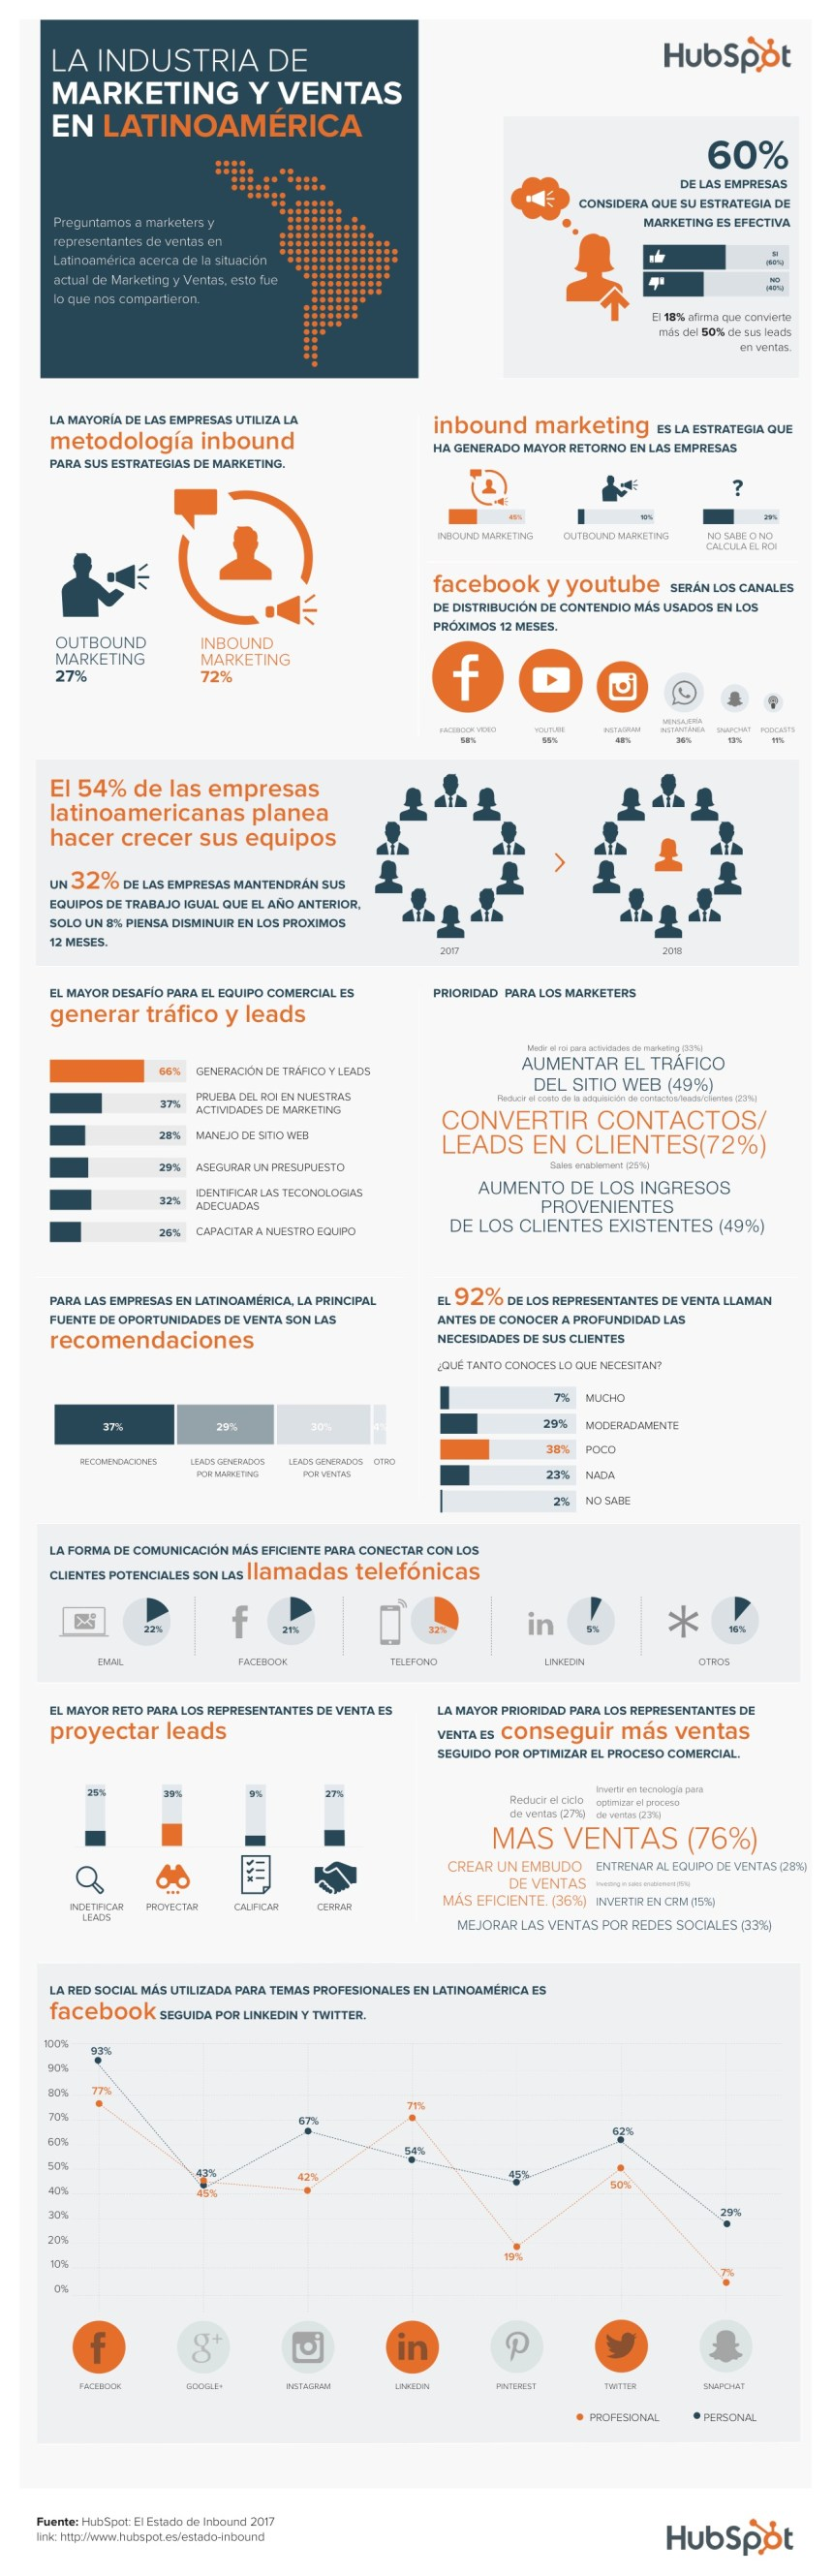 El sector de Marketing y Ventas en Latinoamérica